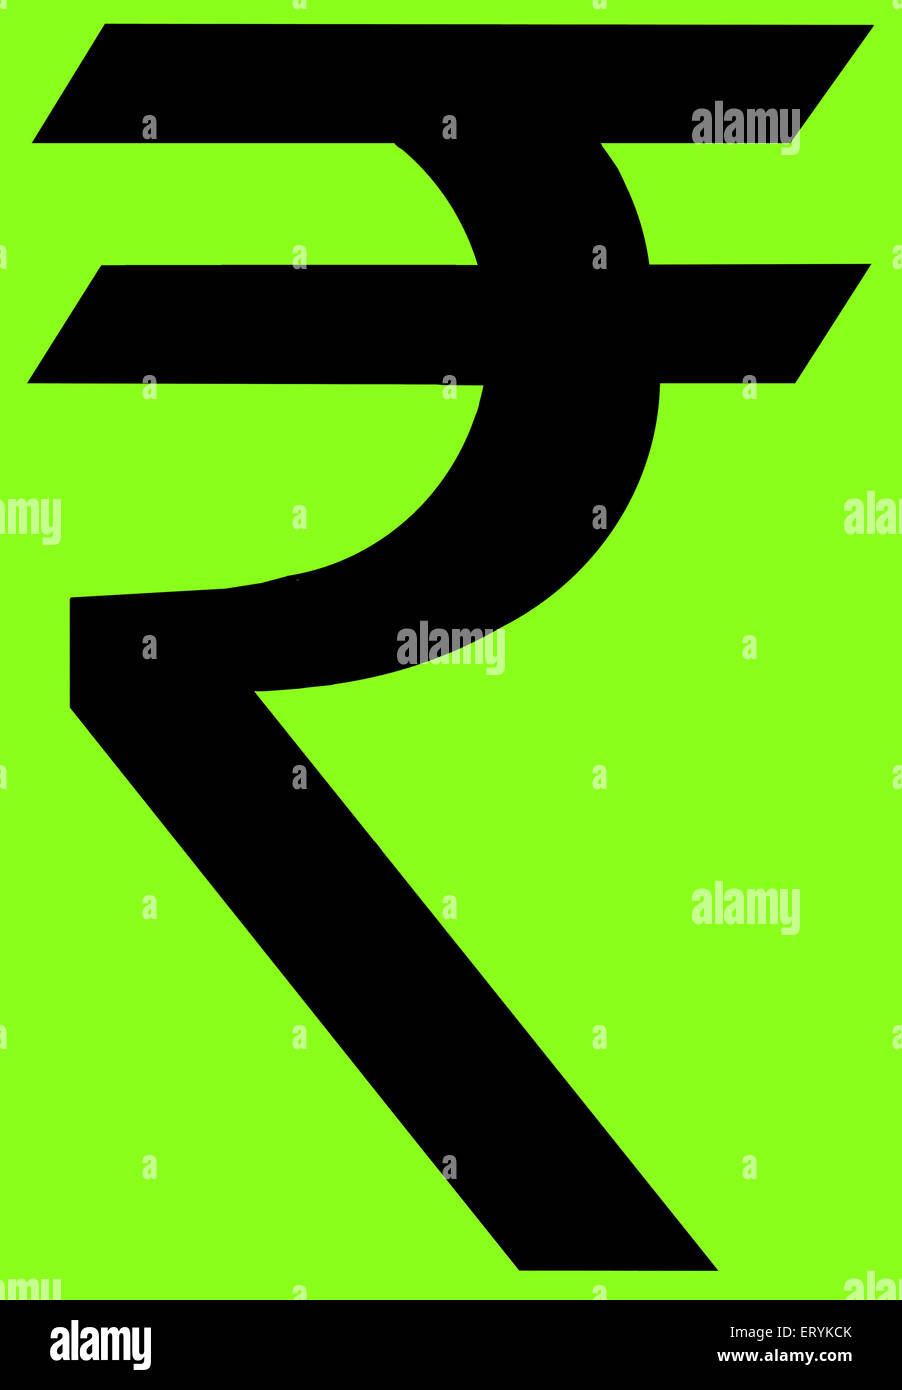 Indian Currency Symbol Stock Photos Indian Currency Symbol Stock